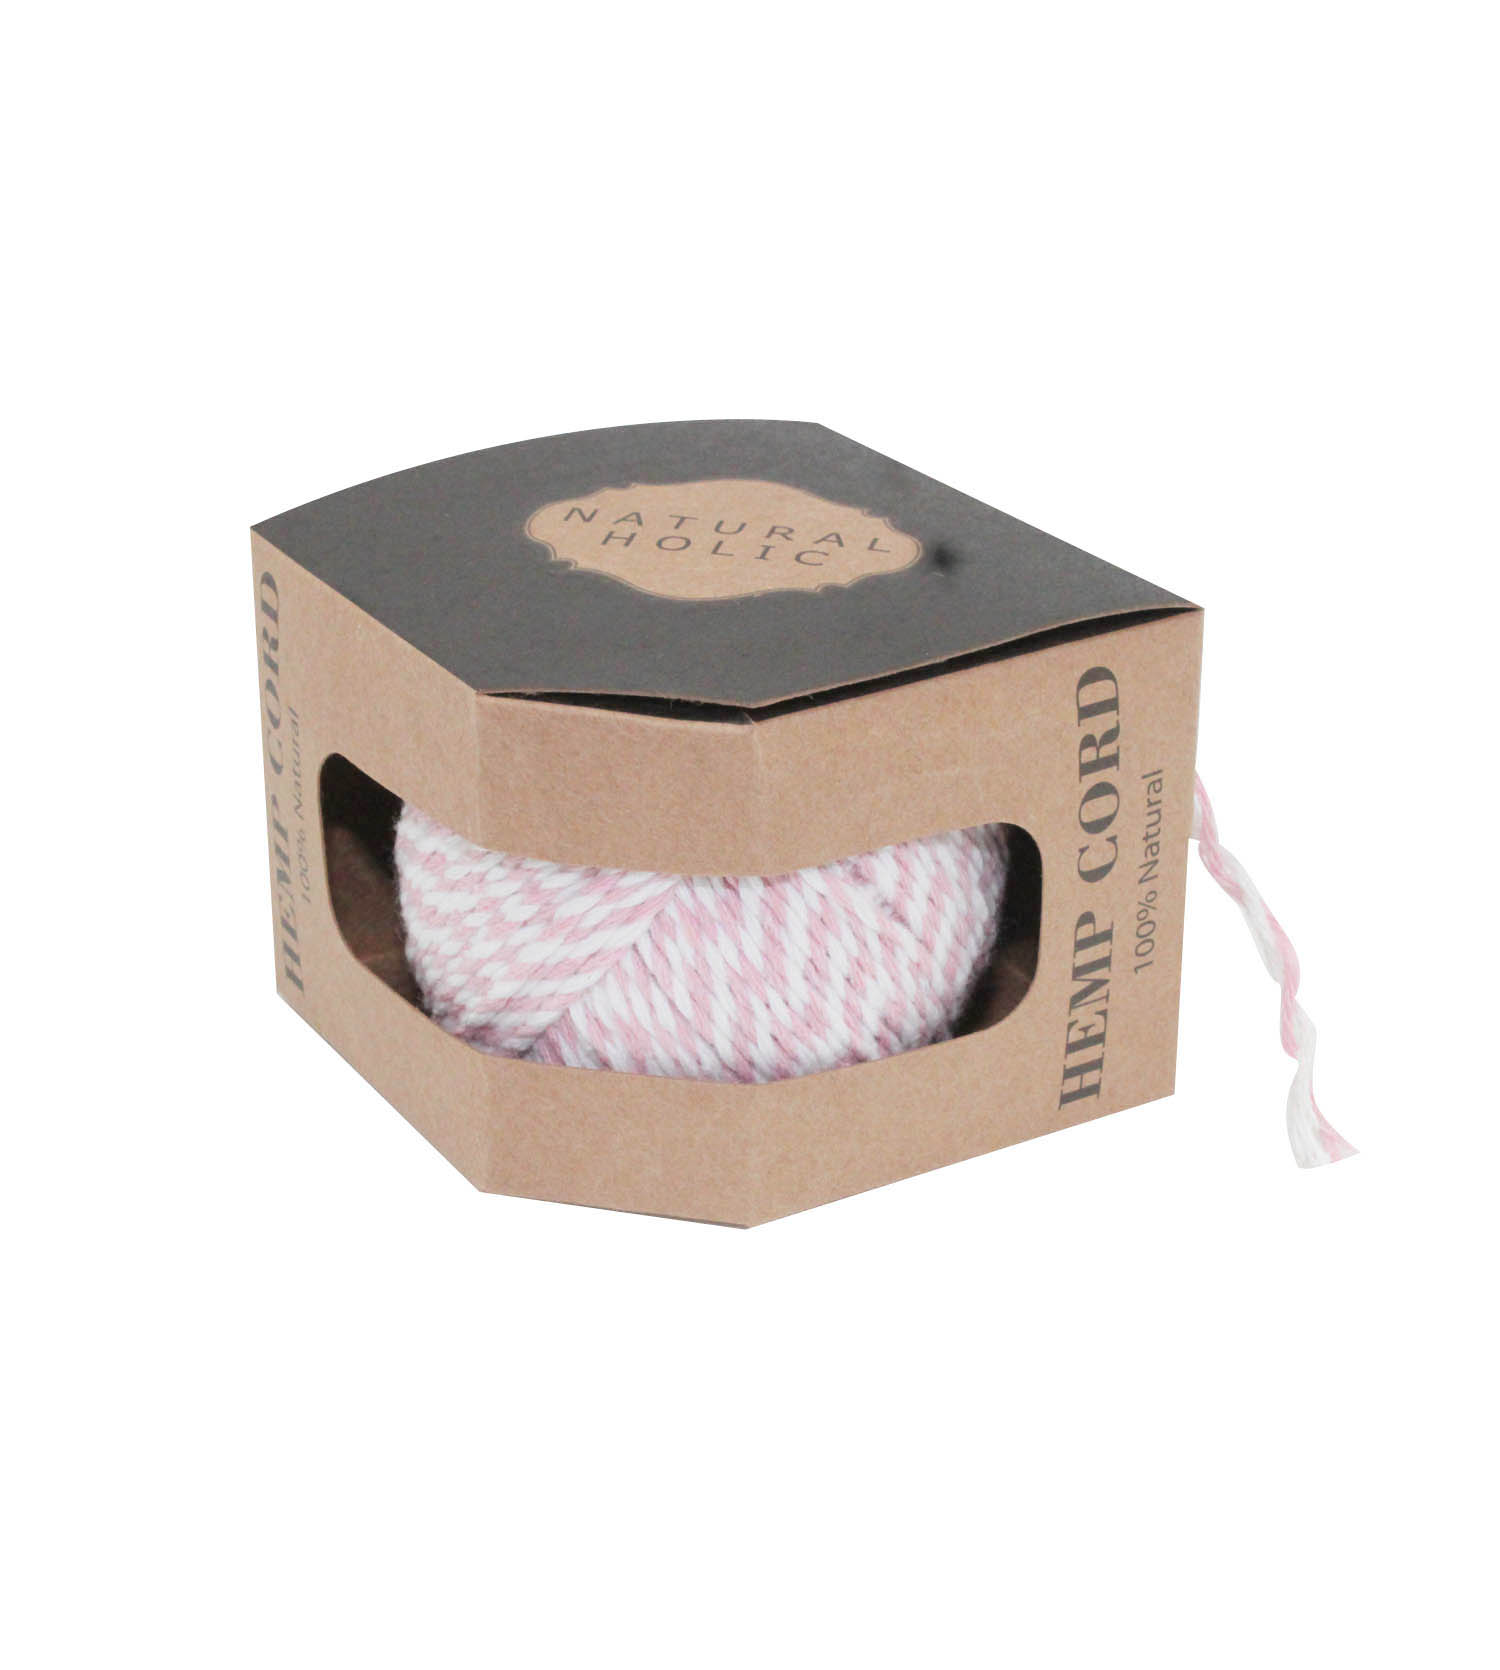 1.5MM 45Yards Boxed Cotton Bakers Twine Macrame cord, Natural cord